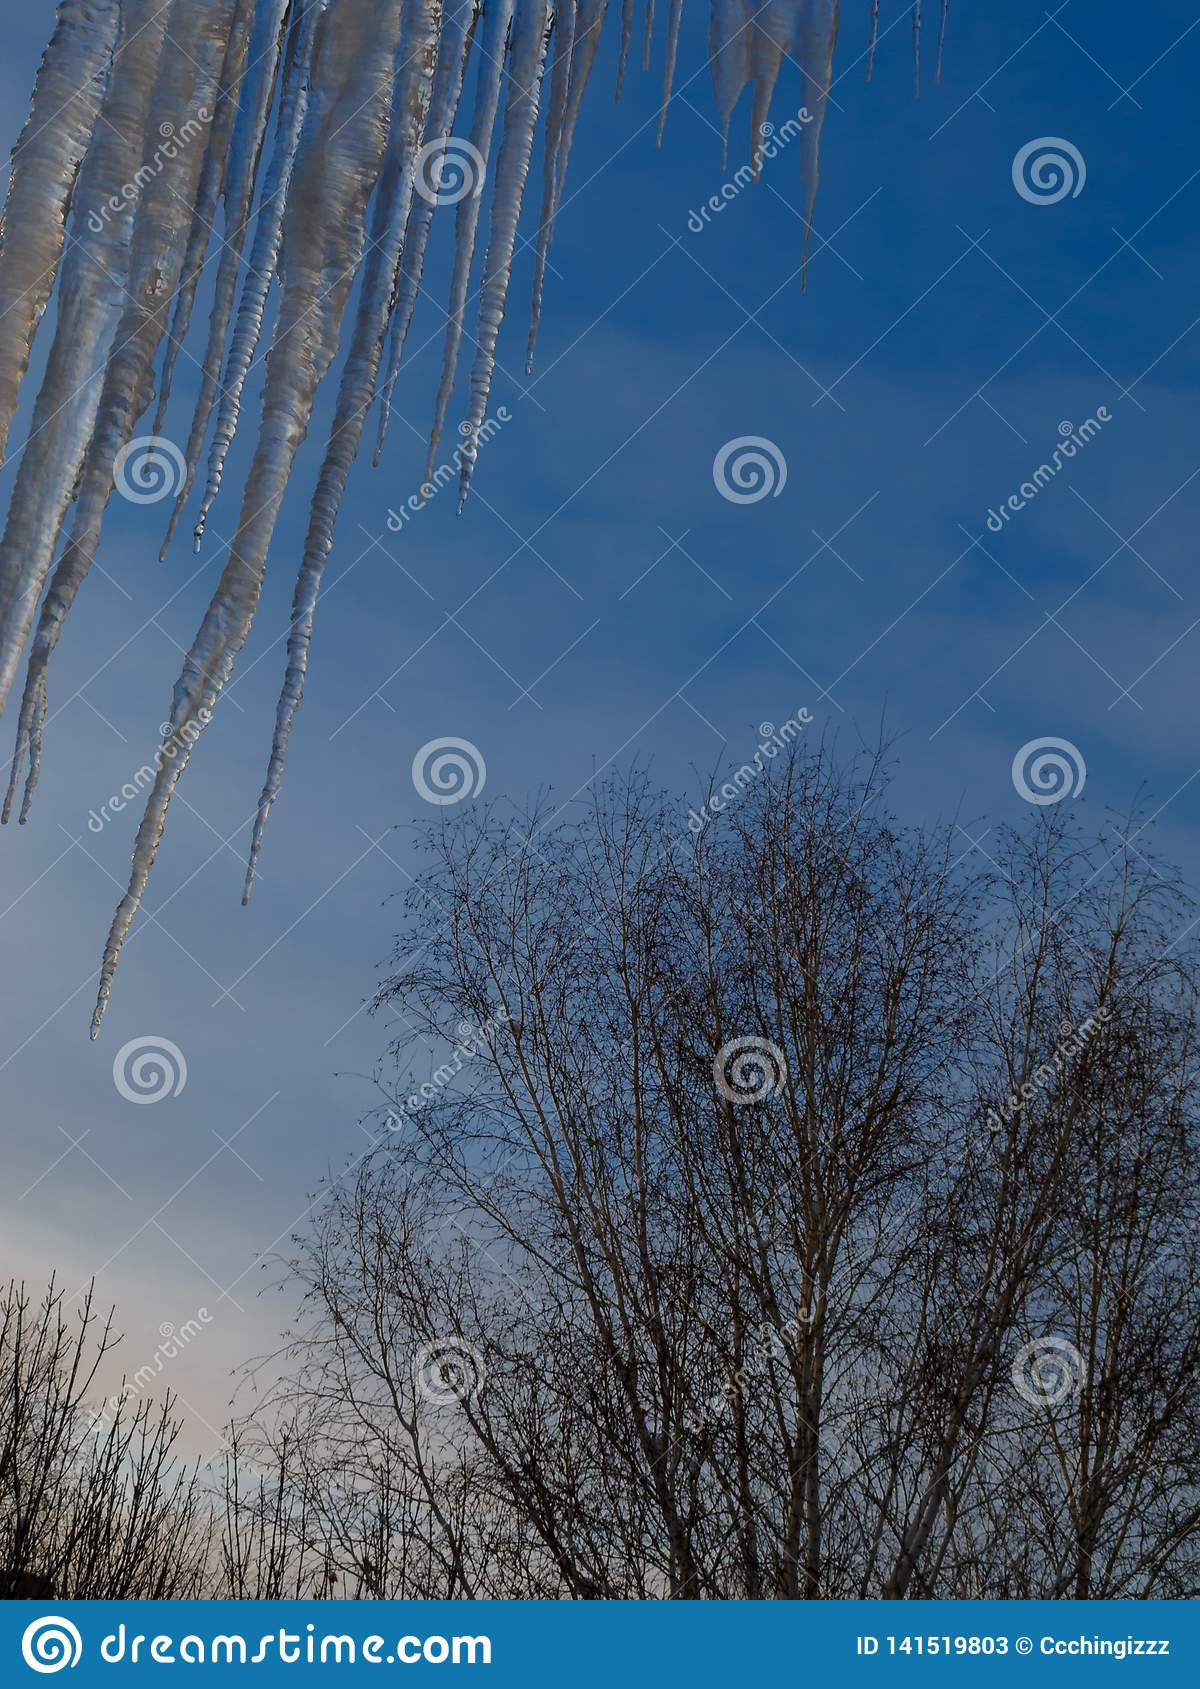 Huge icicles of ice hang from the roof against the blue sky and the treetops. Vertical orientation.